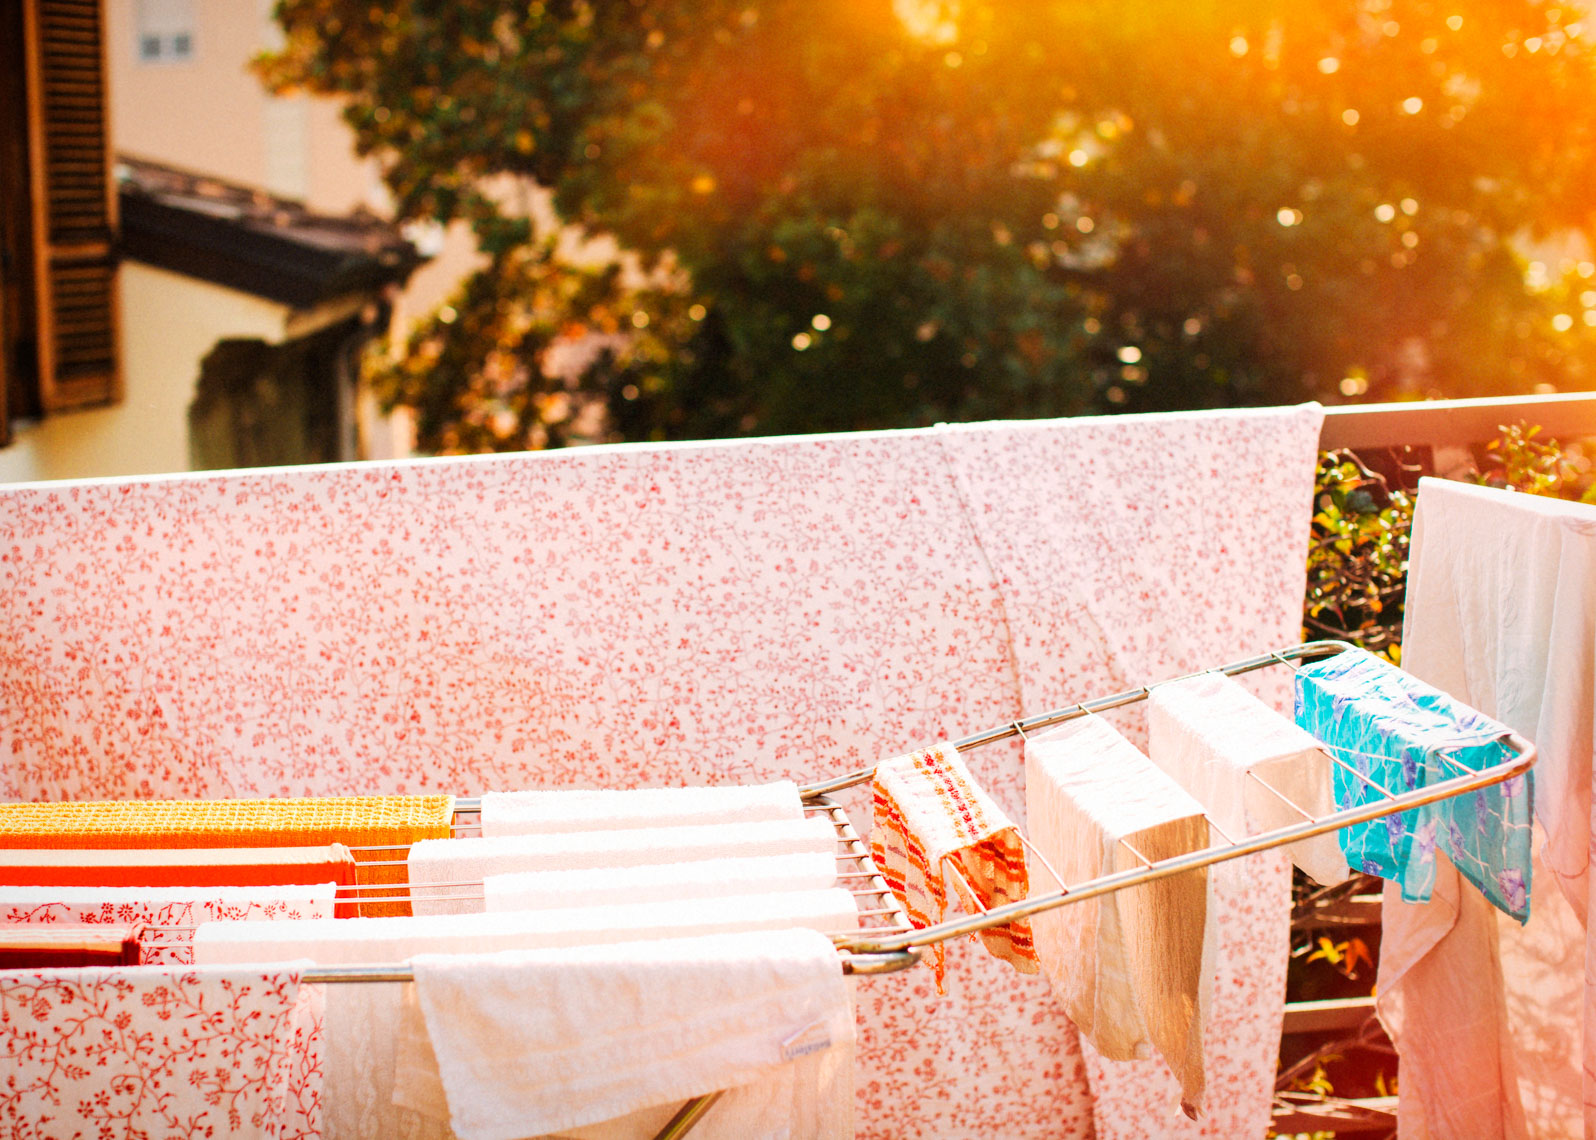 Travel Image Of Laundry in Italy | Tosca Radigonda Photography